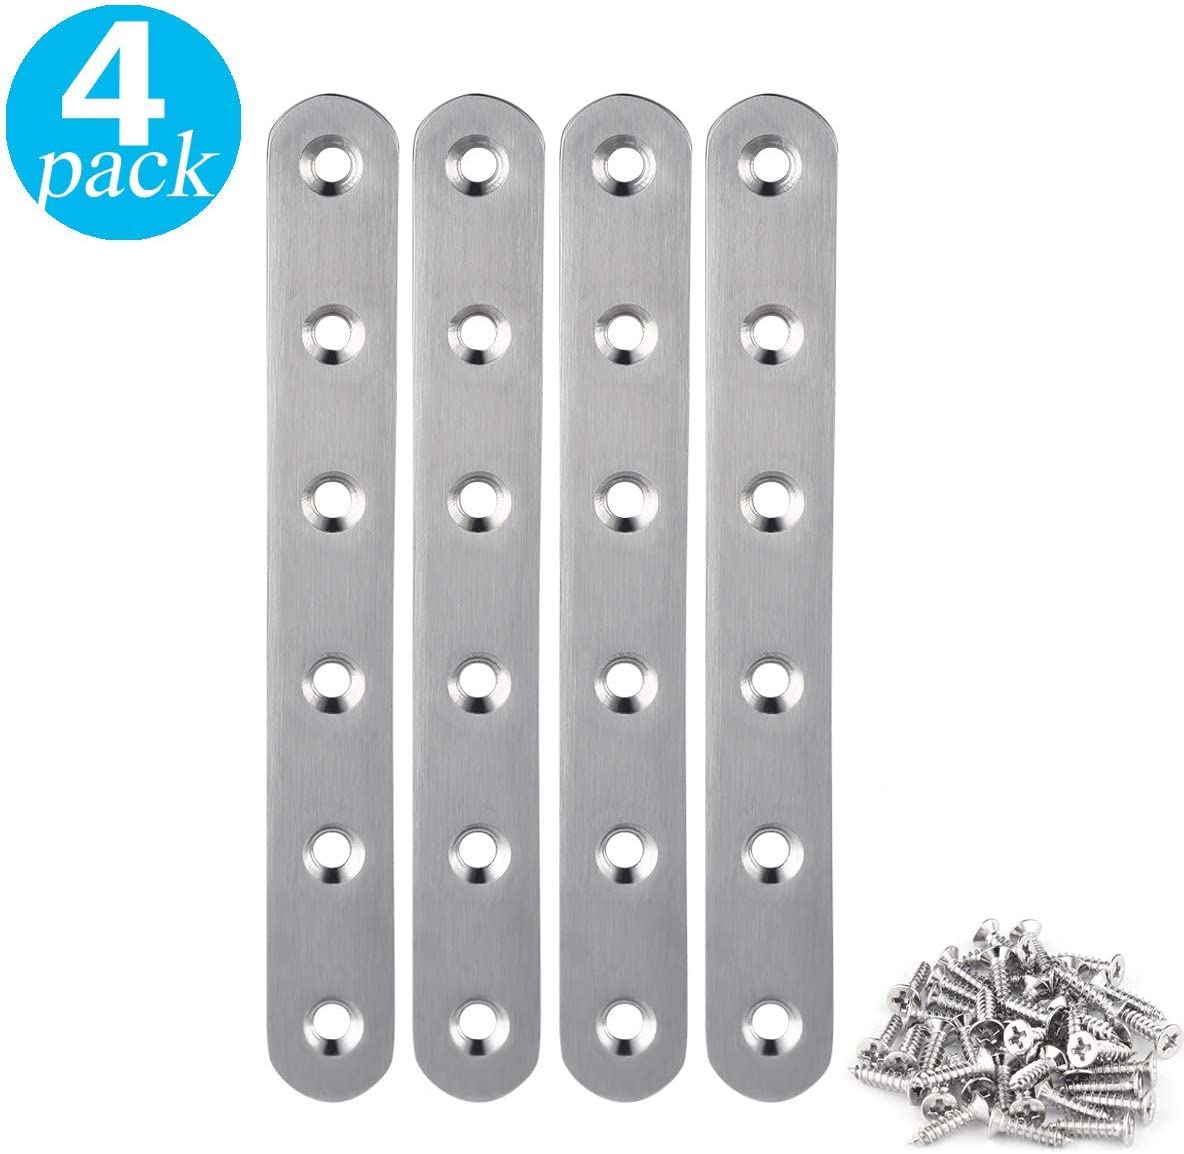 4 Pieces Stainless Steel Straight Brace (6.2 x 0.8 inch,20 x 158 mm) Flat Straight Braces, Straight Brackets, 24 Pieces Screws Included